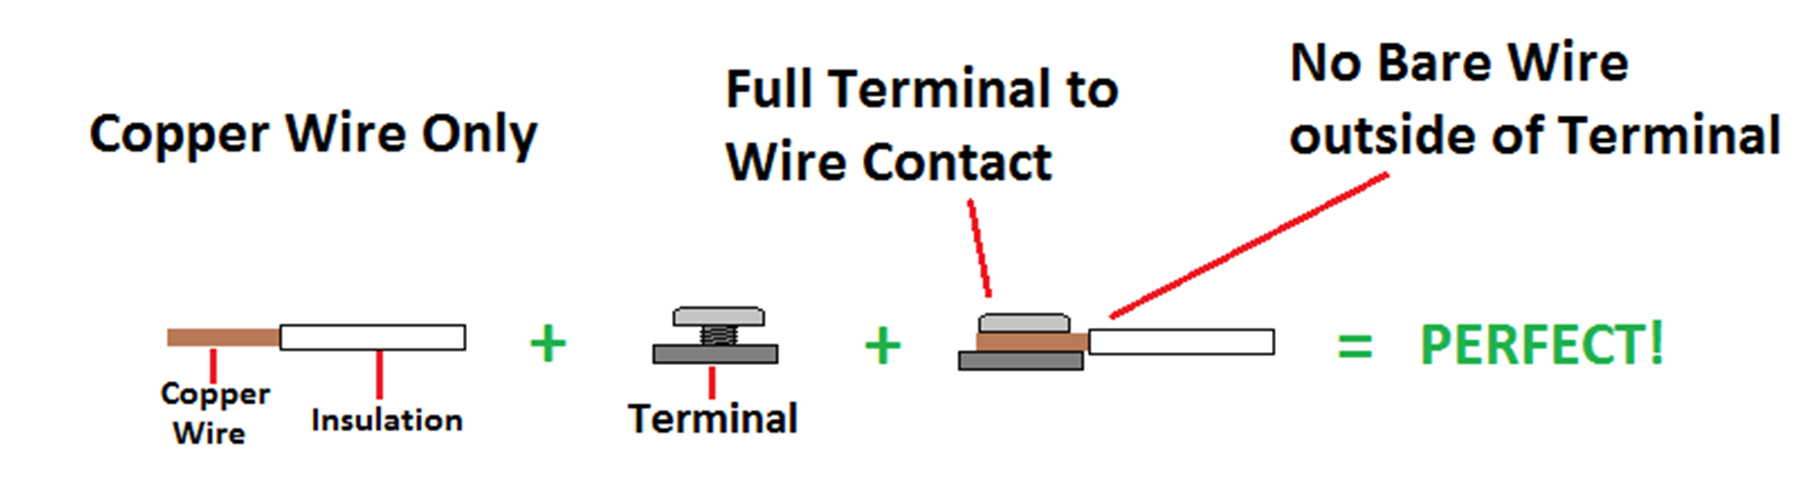 120v Gfci How To Replace A Head On Plug Play Spa Ground Fault Breaker Wiring Diagram For Spas Below Are Examples Of Poor Connections